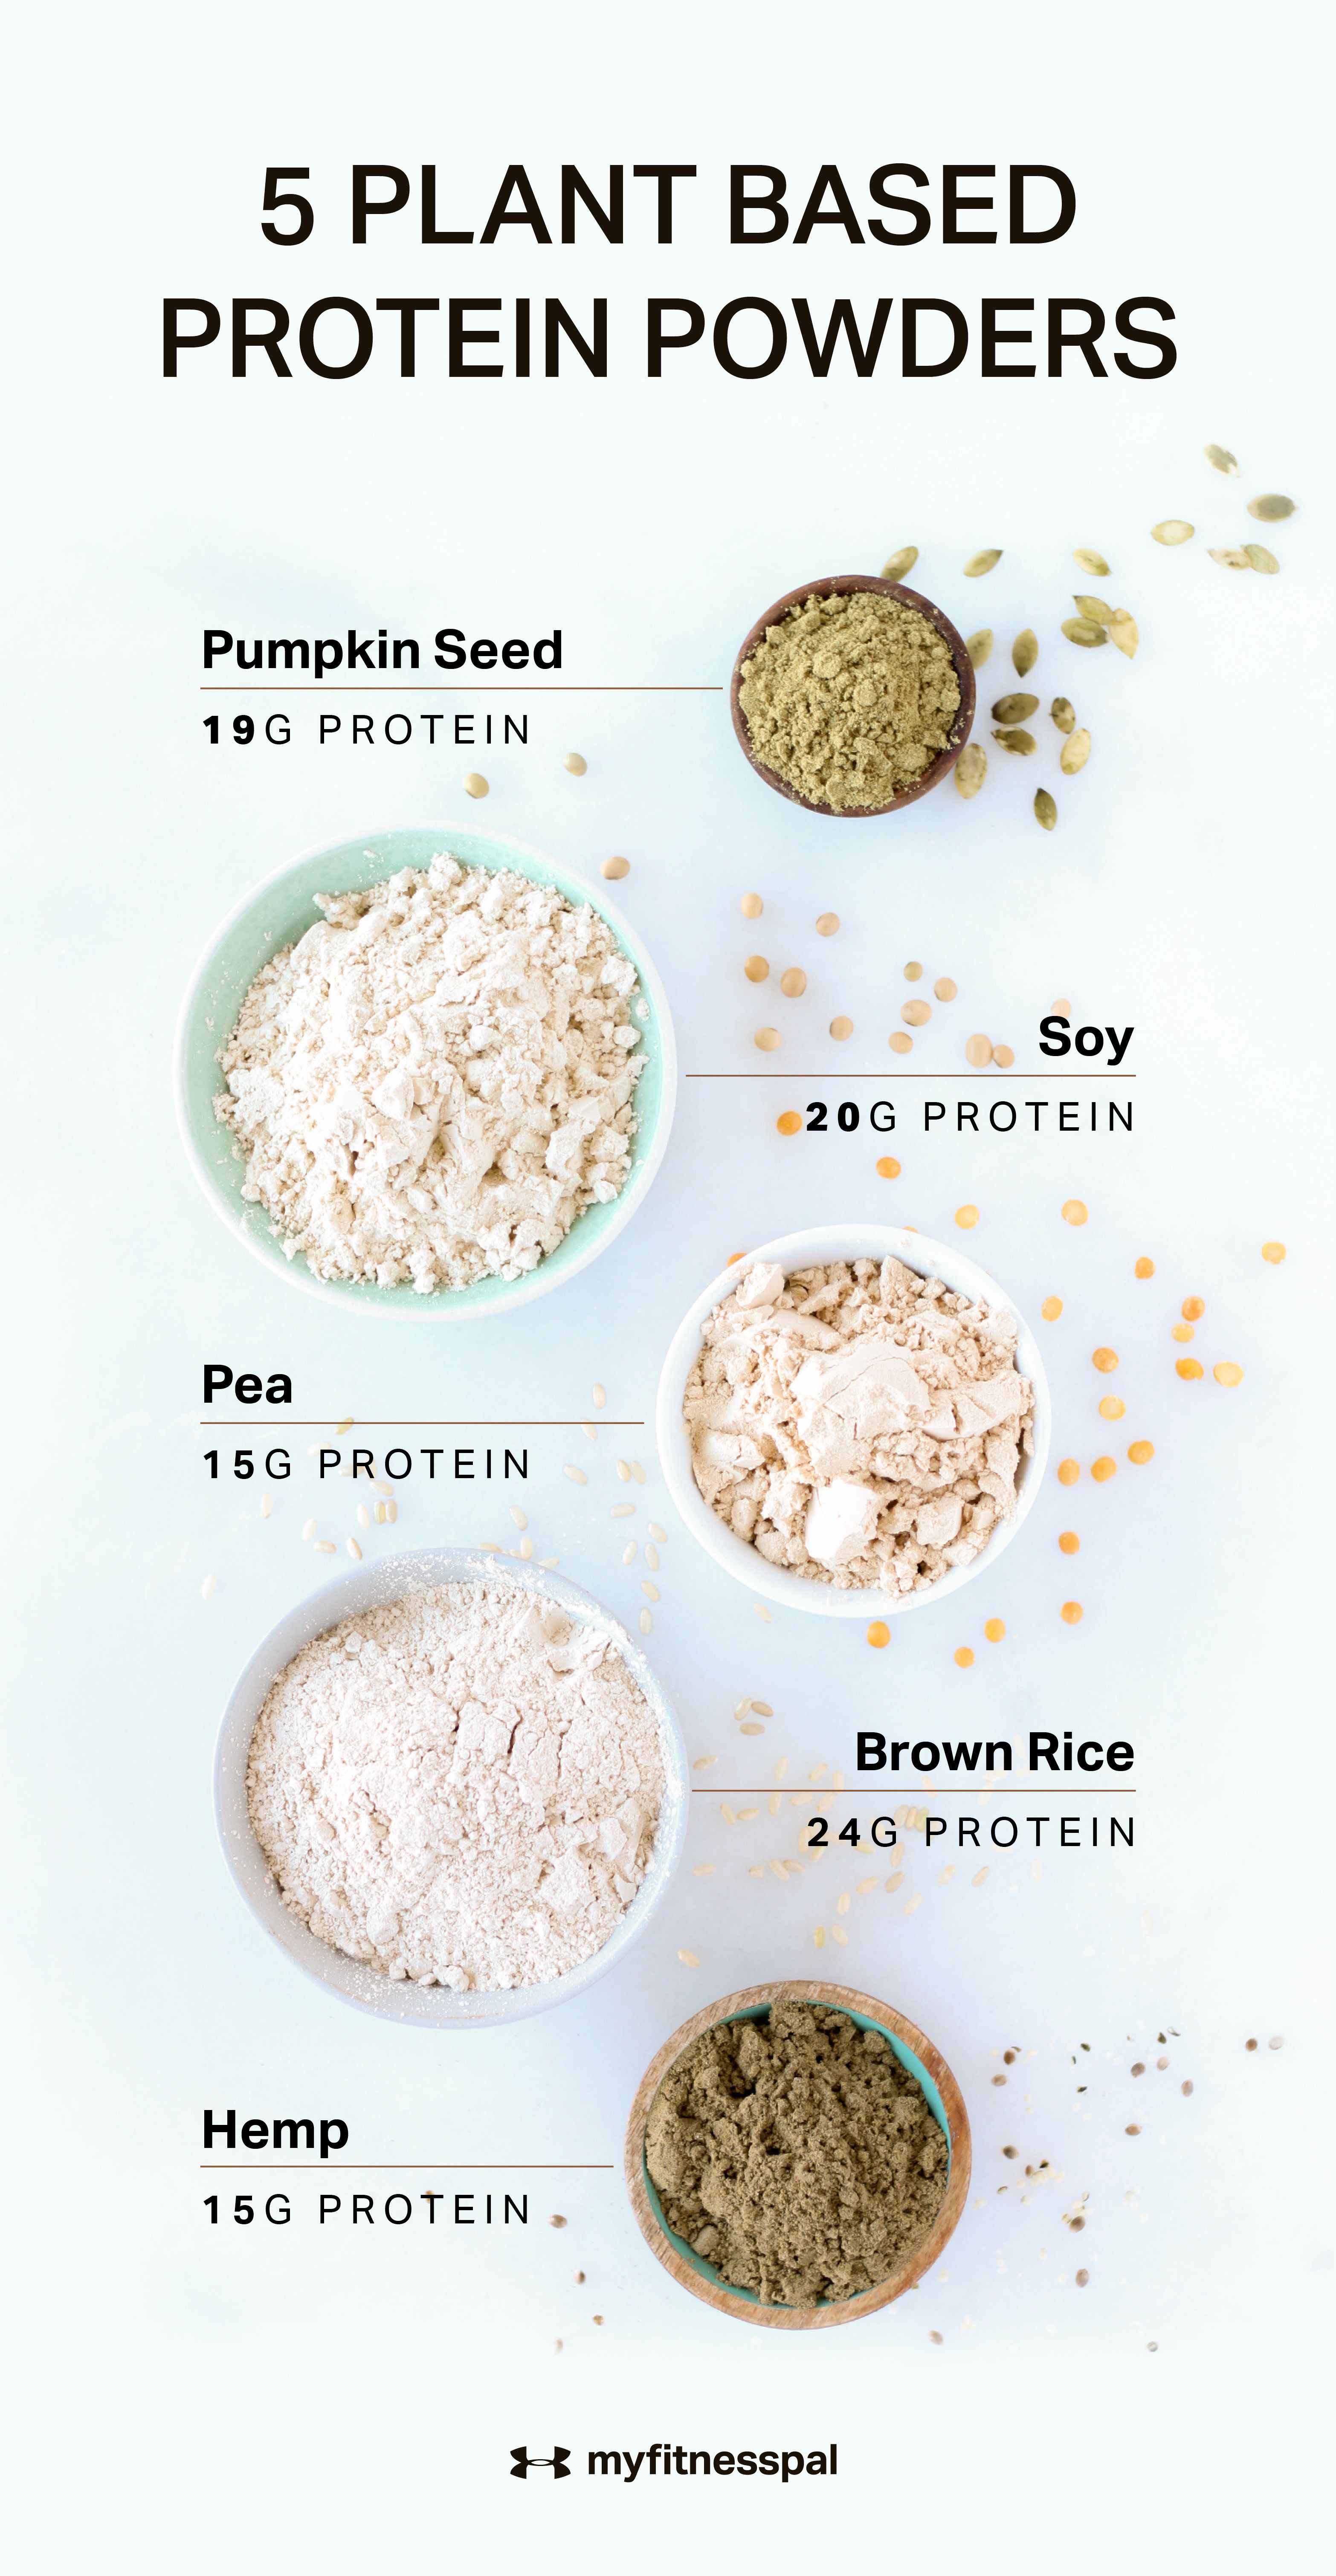 5 Plant-Based Protein Powders Worth Adding to Your Next Smoothie | Nutrition | MyFitnessPal